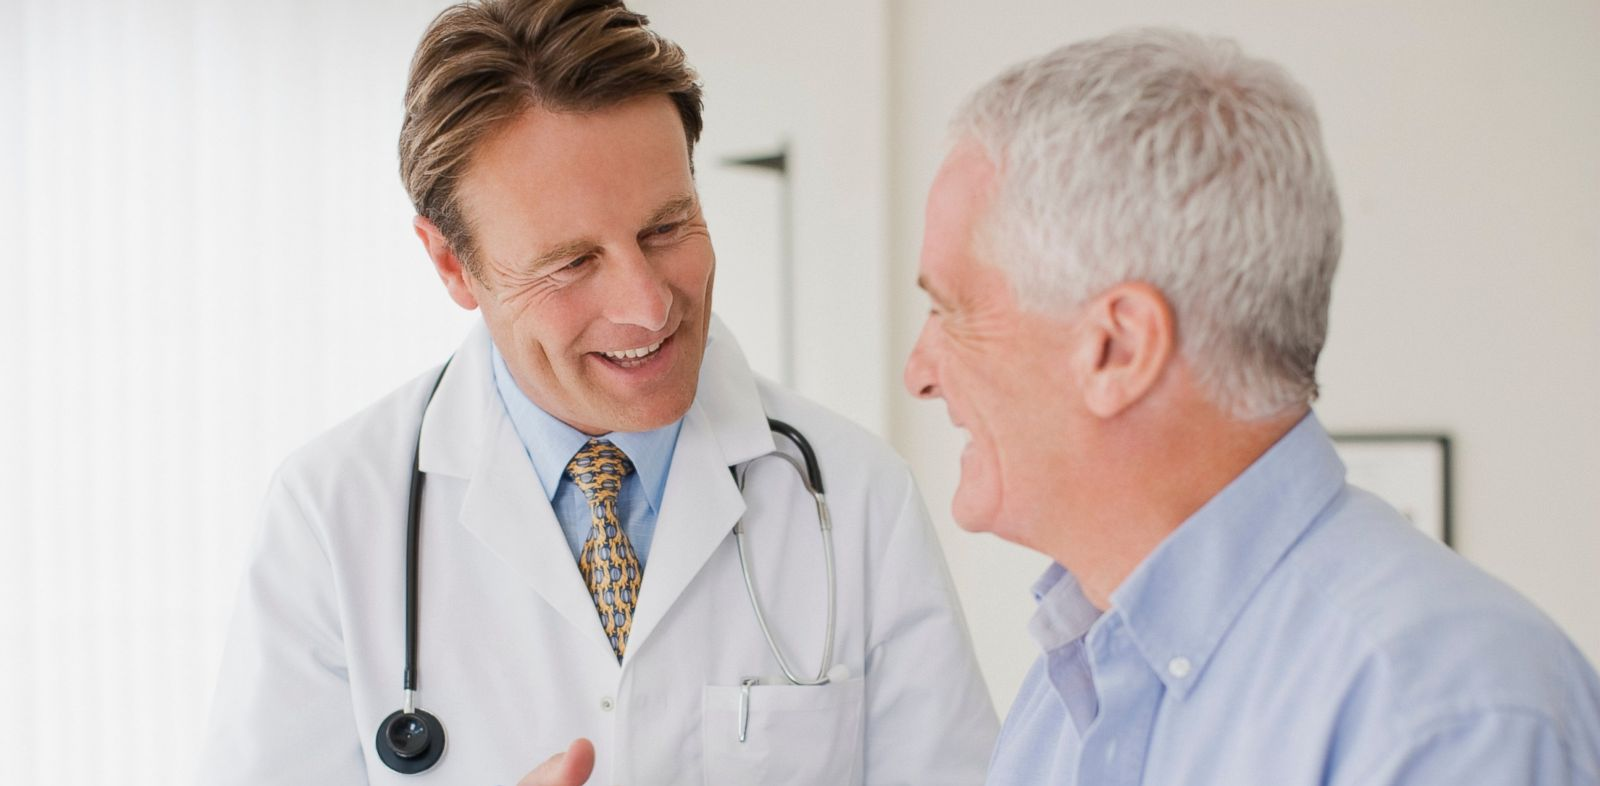 PHOTO: In this undated stock image, a doctor is pictured speaking with a patient.